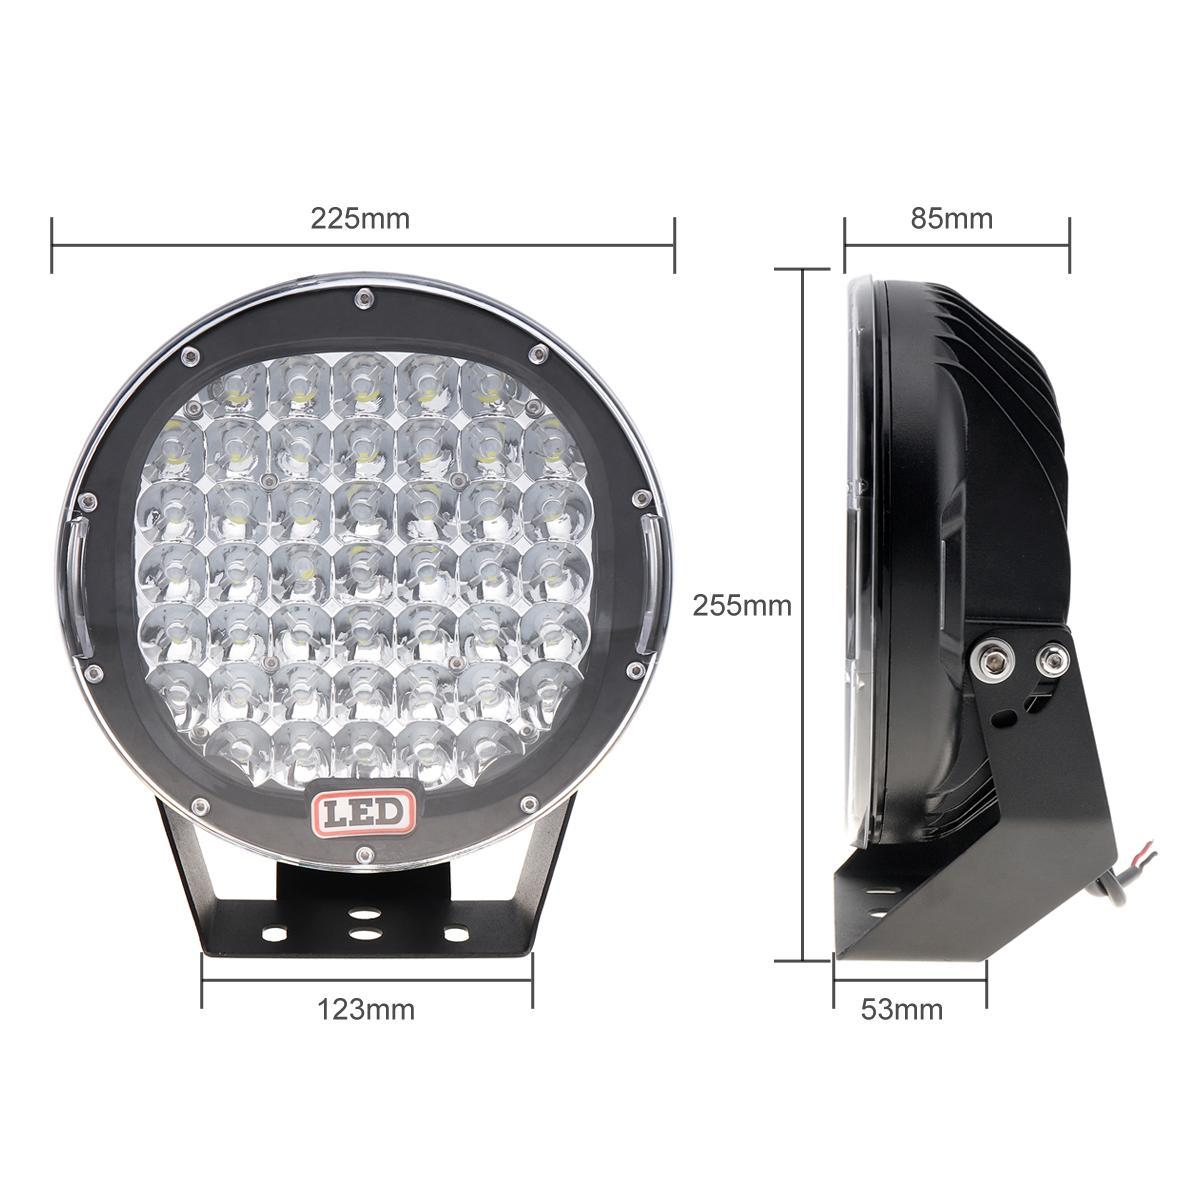 9 Inch Rounded 225w 45x Cree Led Car Worklight Spot /Flood Light Vehicle Driving Lights For Offroad Suv Atv Truck Boat Clt _42r